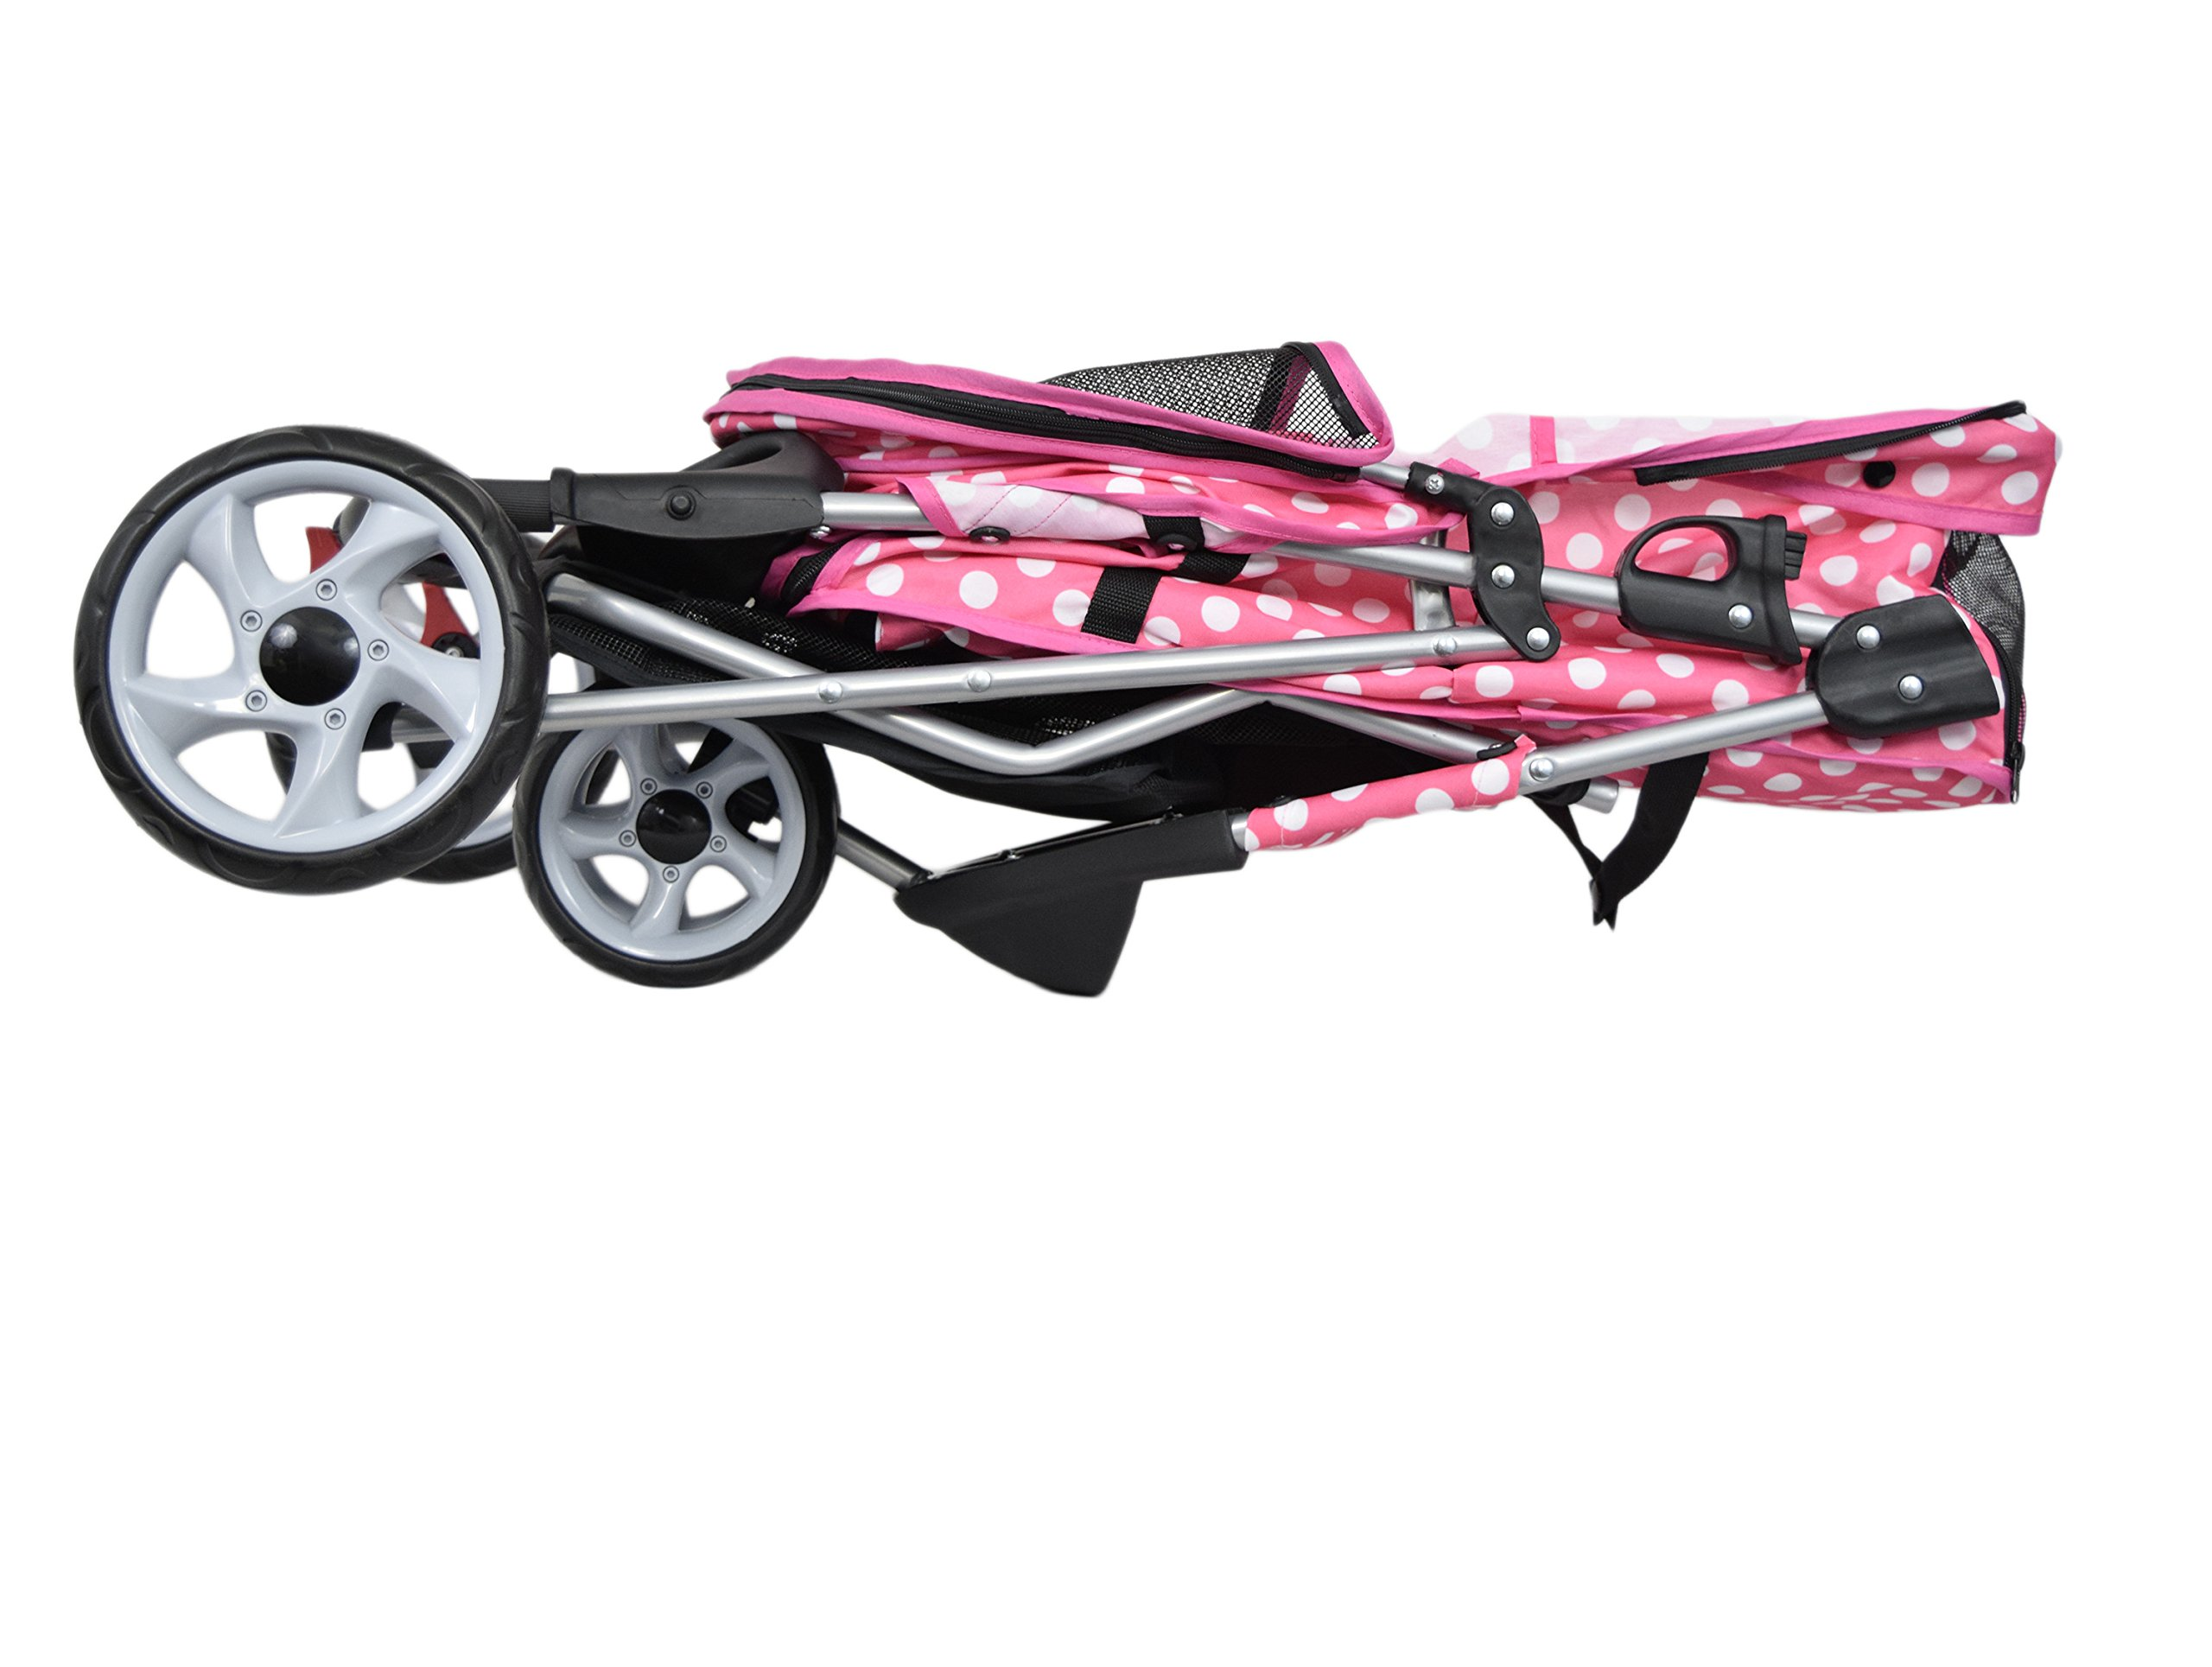 VIVO Three Wheel Pet Stroller, for Cat, Dog and More, Foldable Carrier Strolling Cart, Multiple Colors (Pink & White Polka Dot) by VIVO (Image #7)